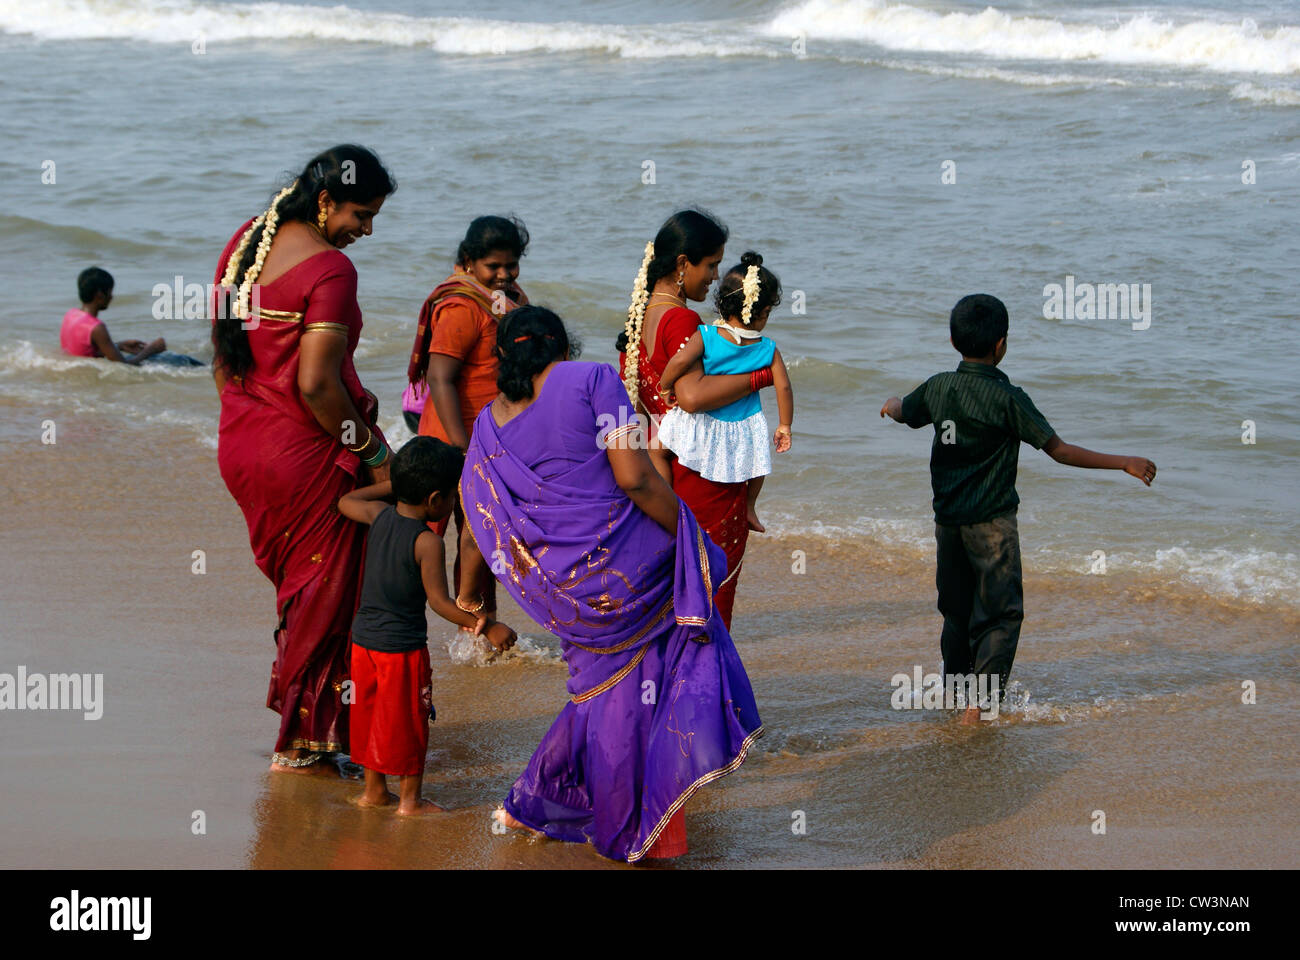 Tamil Indian Family Womens Enjoying Vacation with Children in Marina